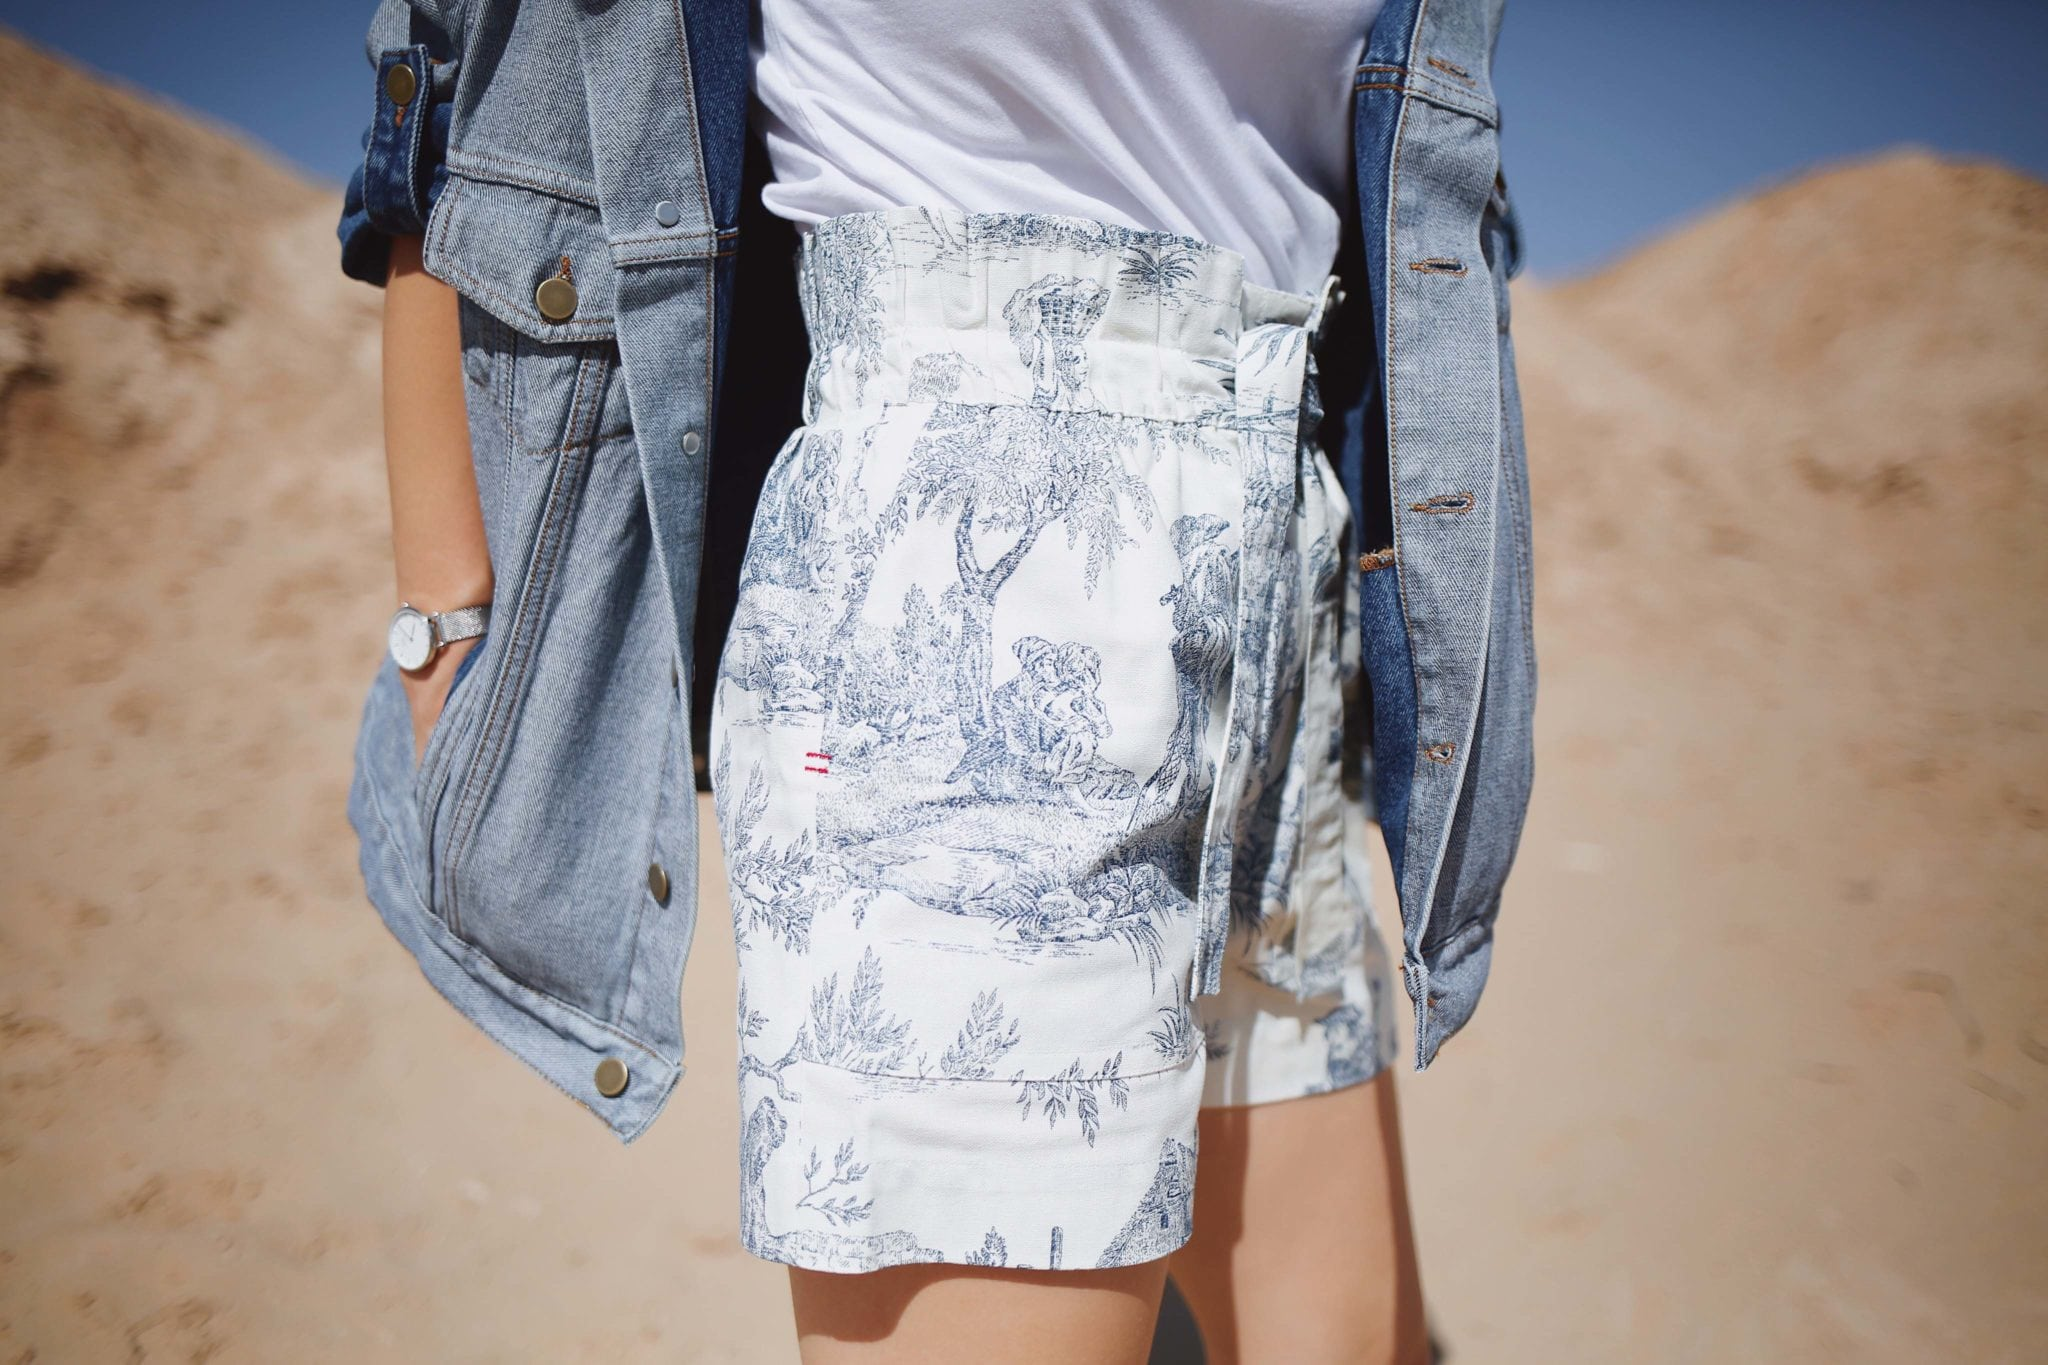 High Waisted Shorts Trap Jouy Bleu by Les Expatries, a Parisian Label worn by Julia Comil French Fashion Blogger in Los Angeles - French style